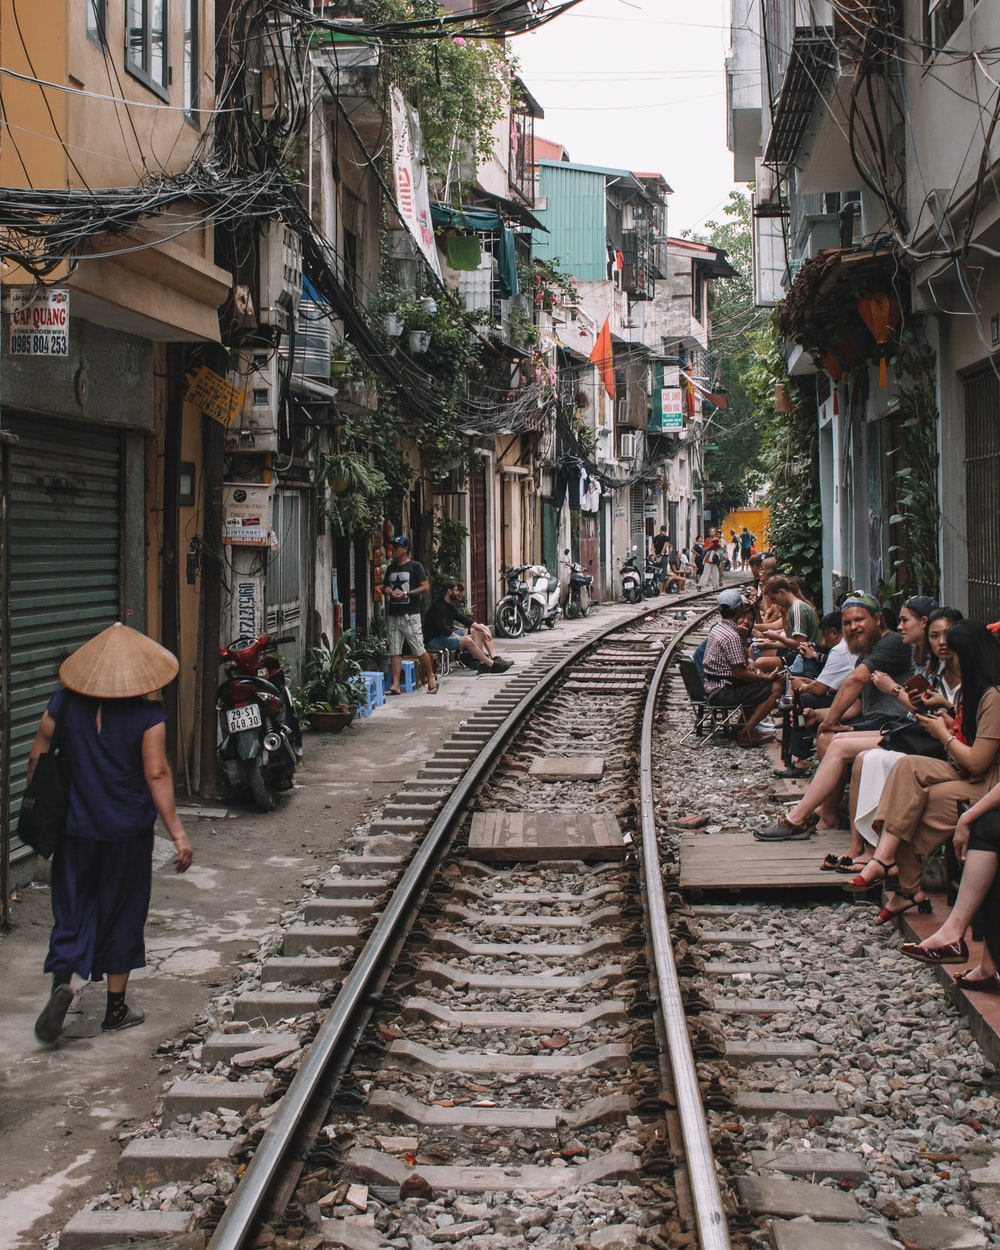 Train Street Pictures Download Free Images On Unsplash